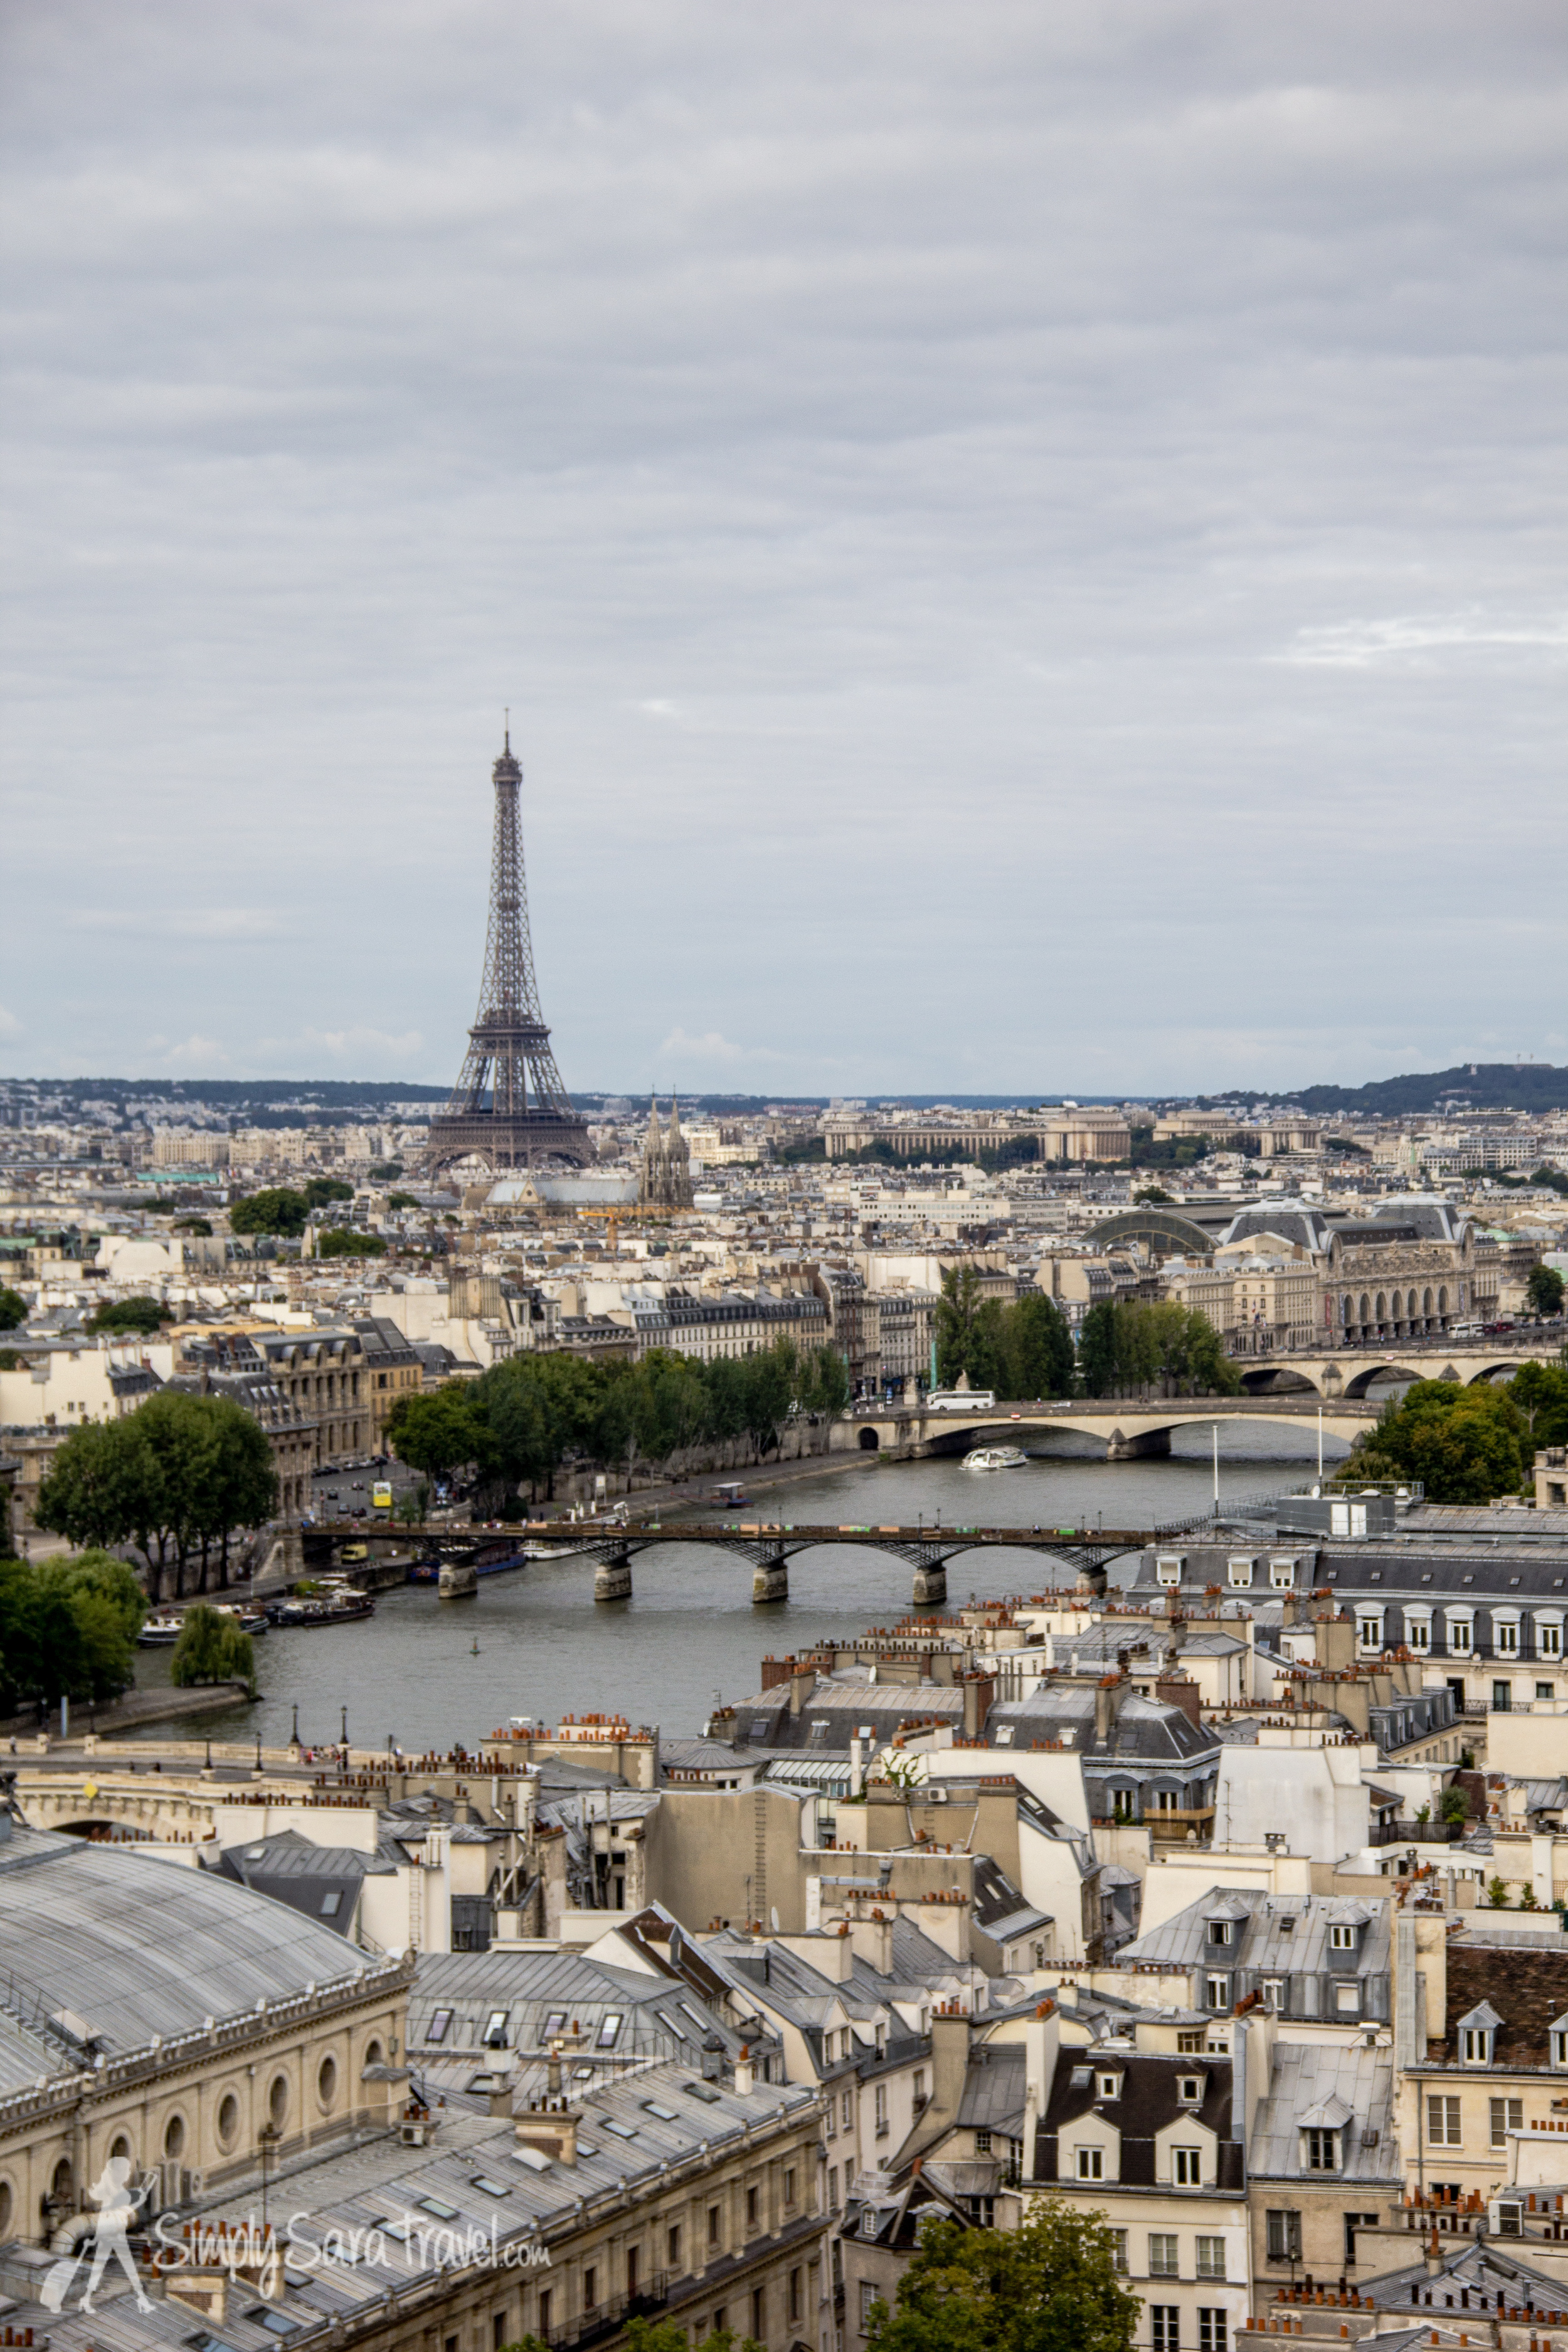 Amid those gorgeous Parisian rooftops stands the Eiffel Tower andTrocadéro to its right